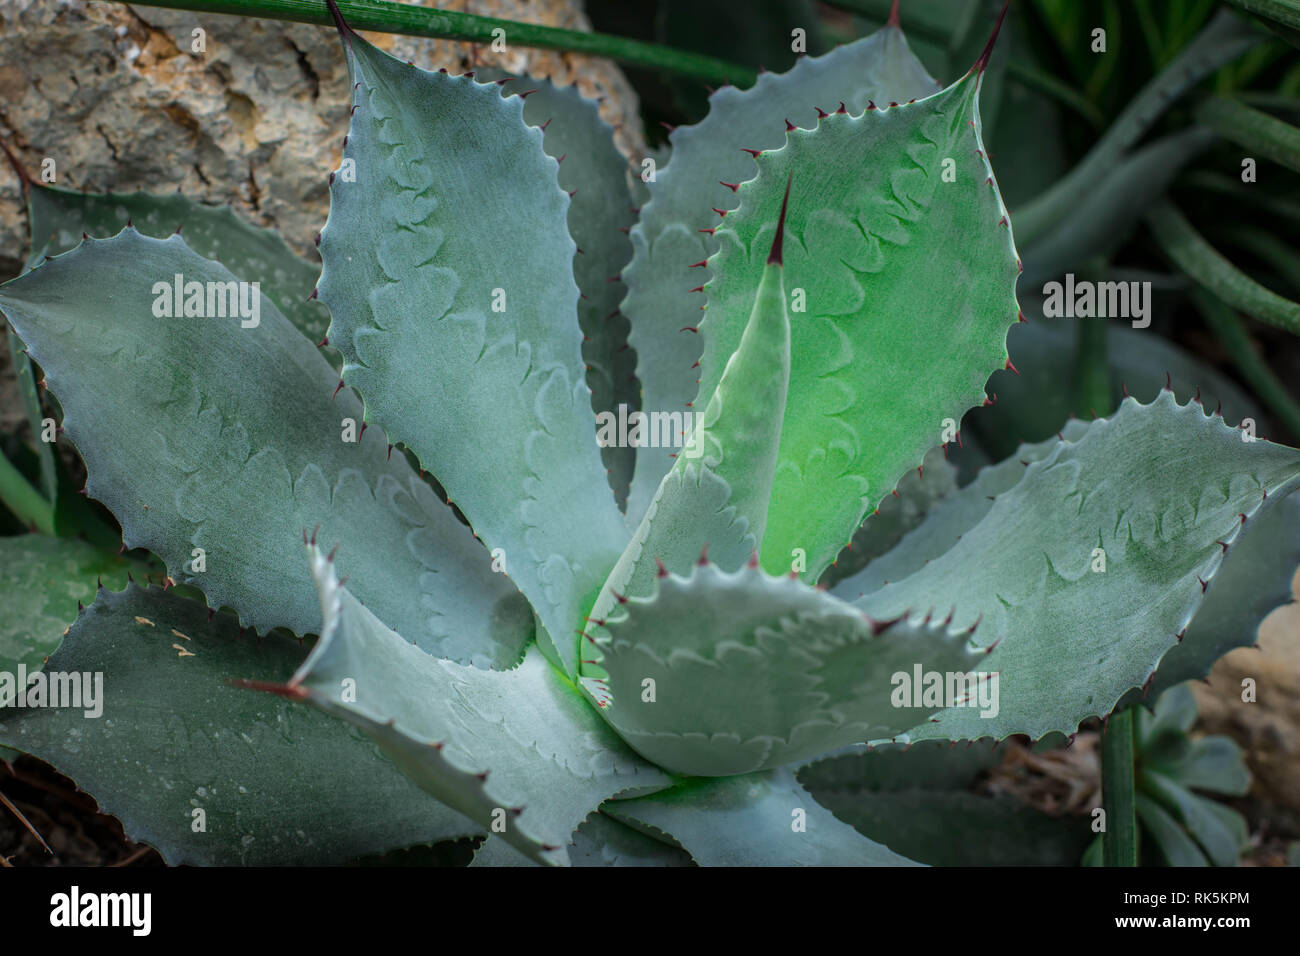 Single plant Agave isthmensis with imprints of leaf margin - Stock Image